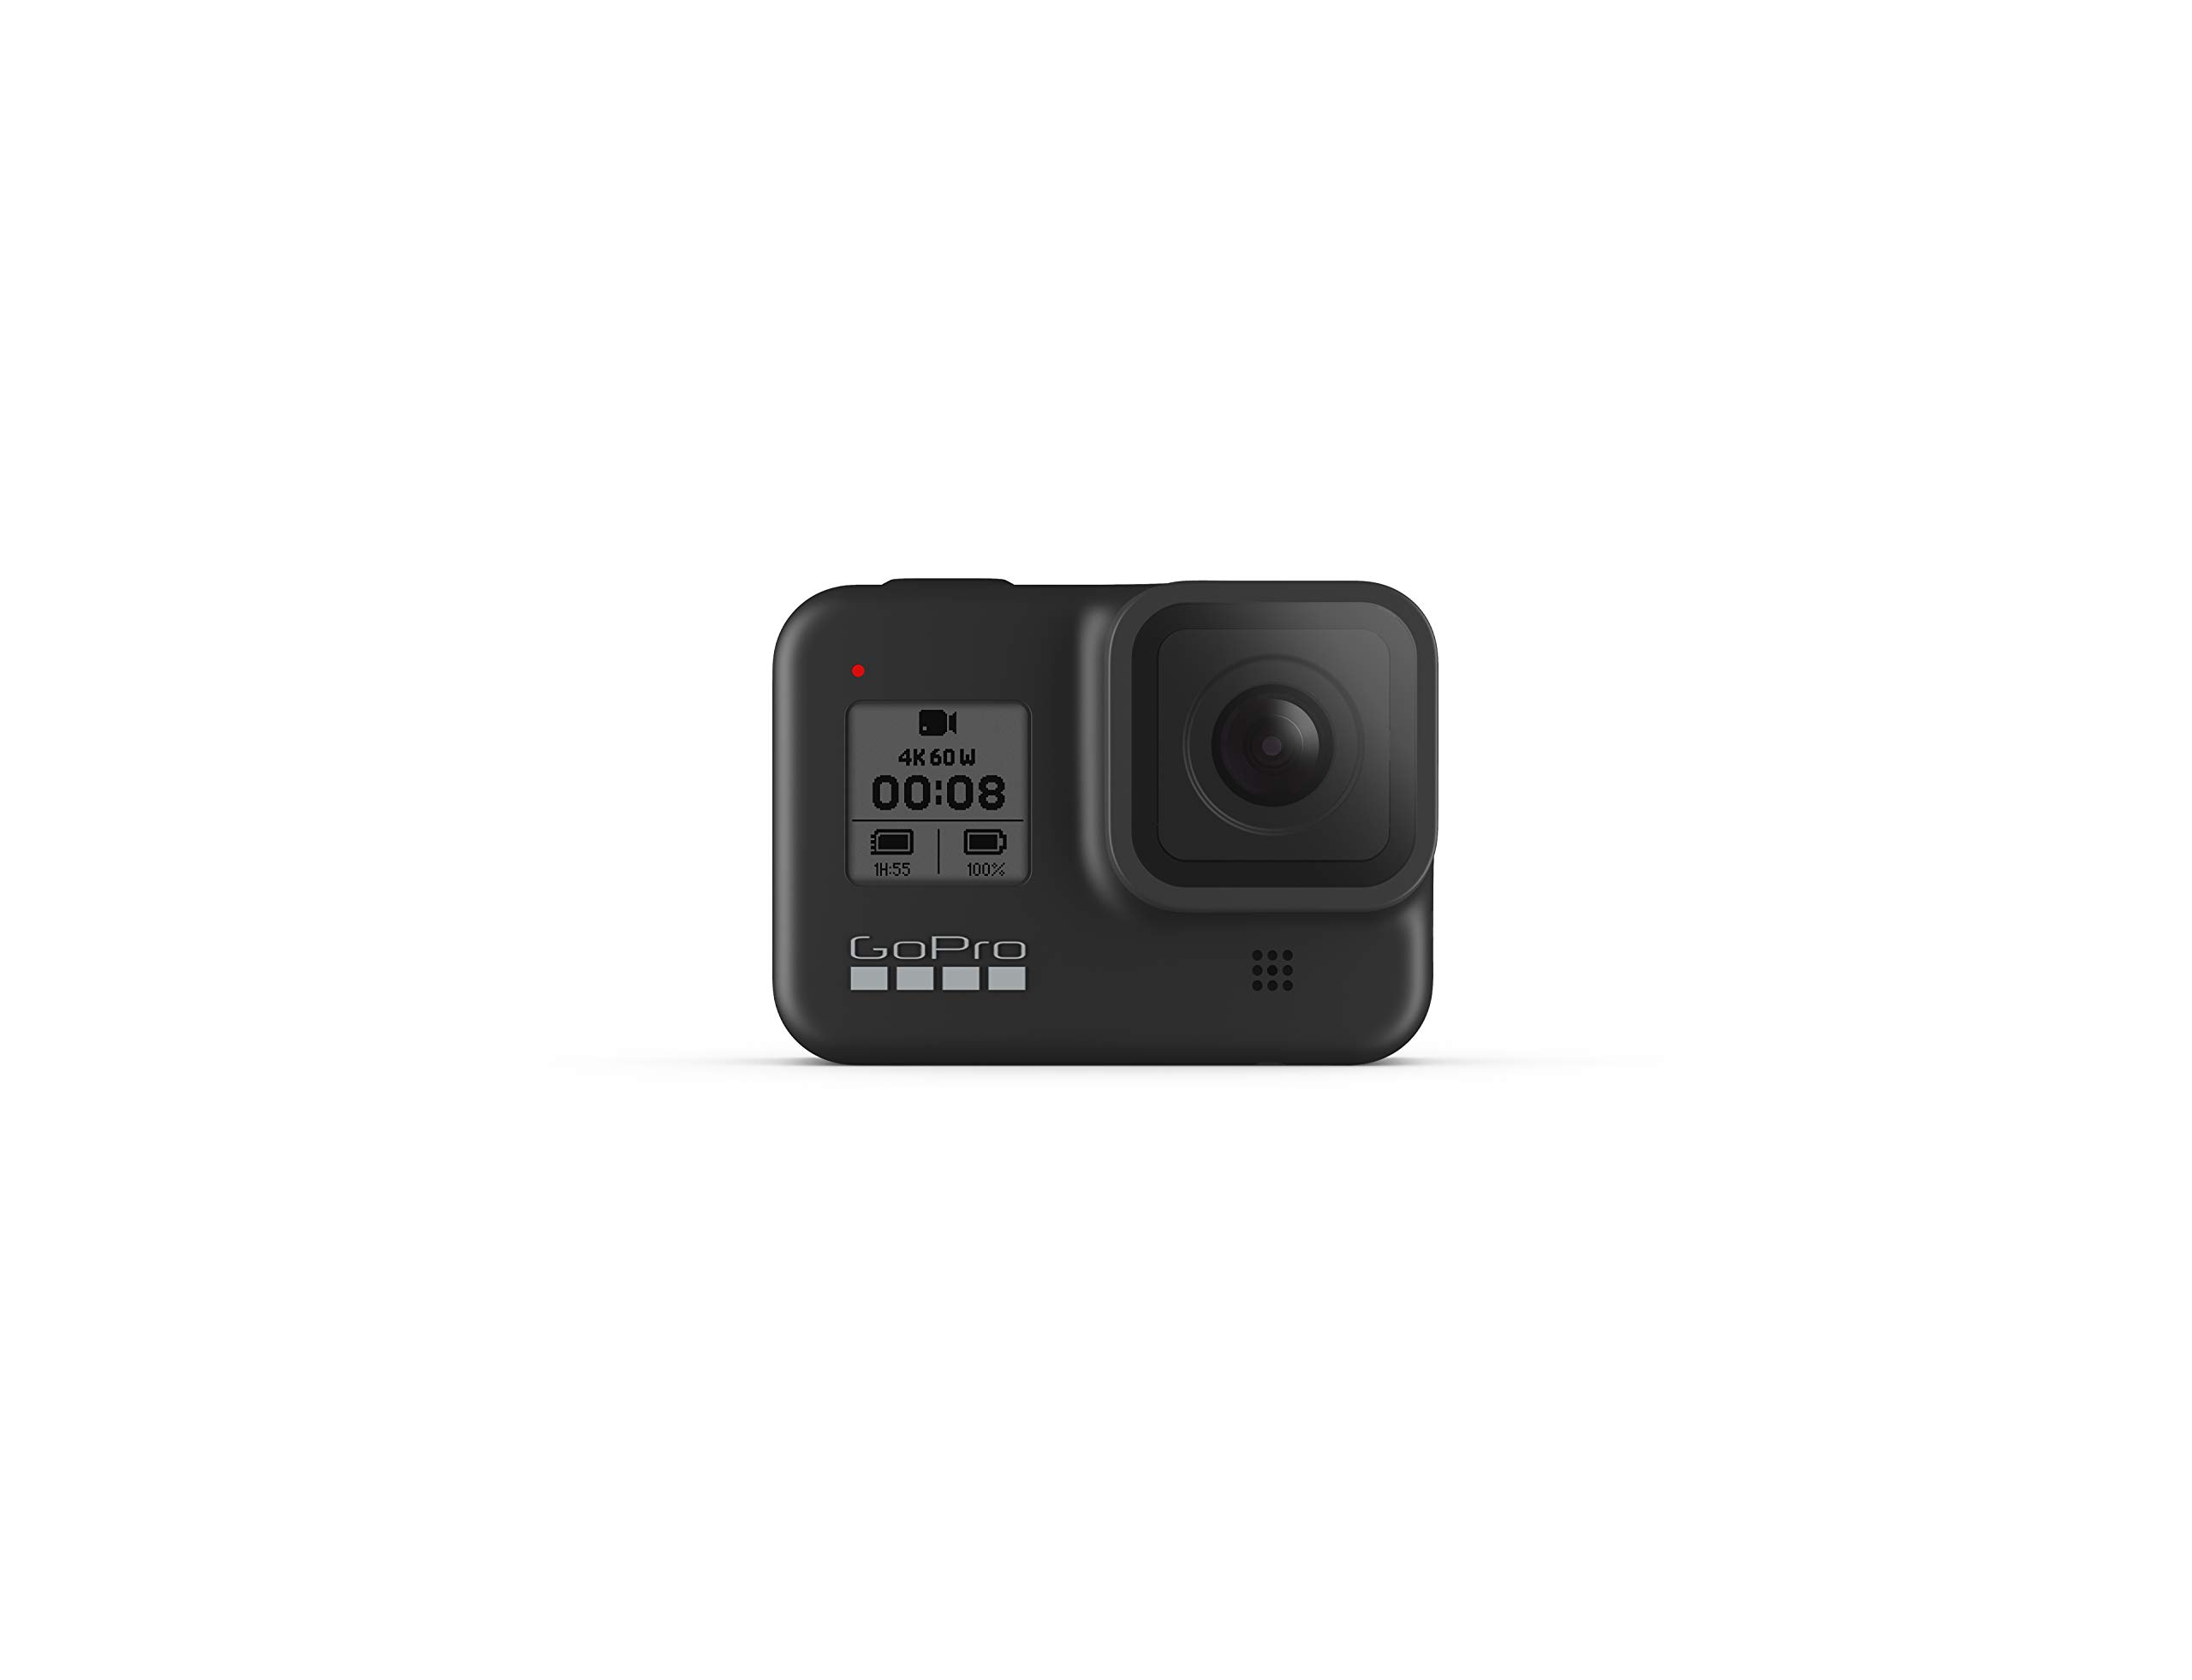 GoPro HERO8 Black - Waterproof Action Camera with Touch Screen 4K Ultra HD Video 12MP Photos 1080p Live Streaming Stabilization by GoPro